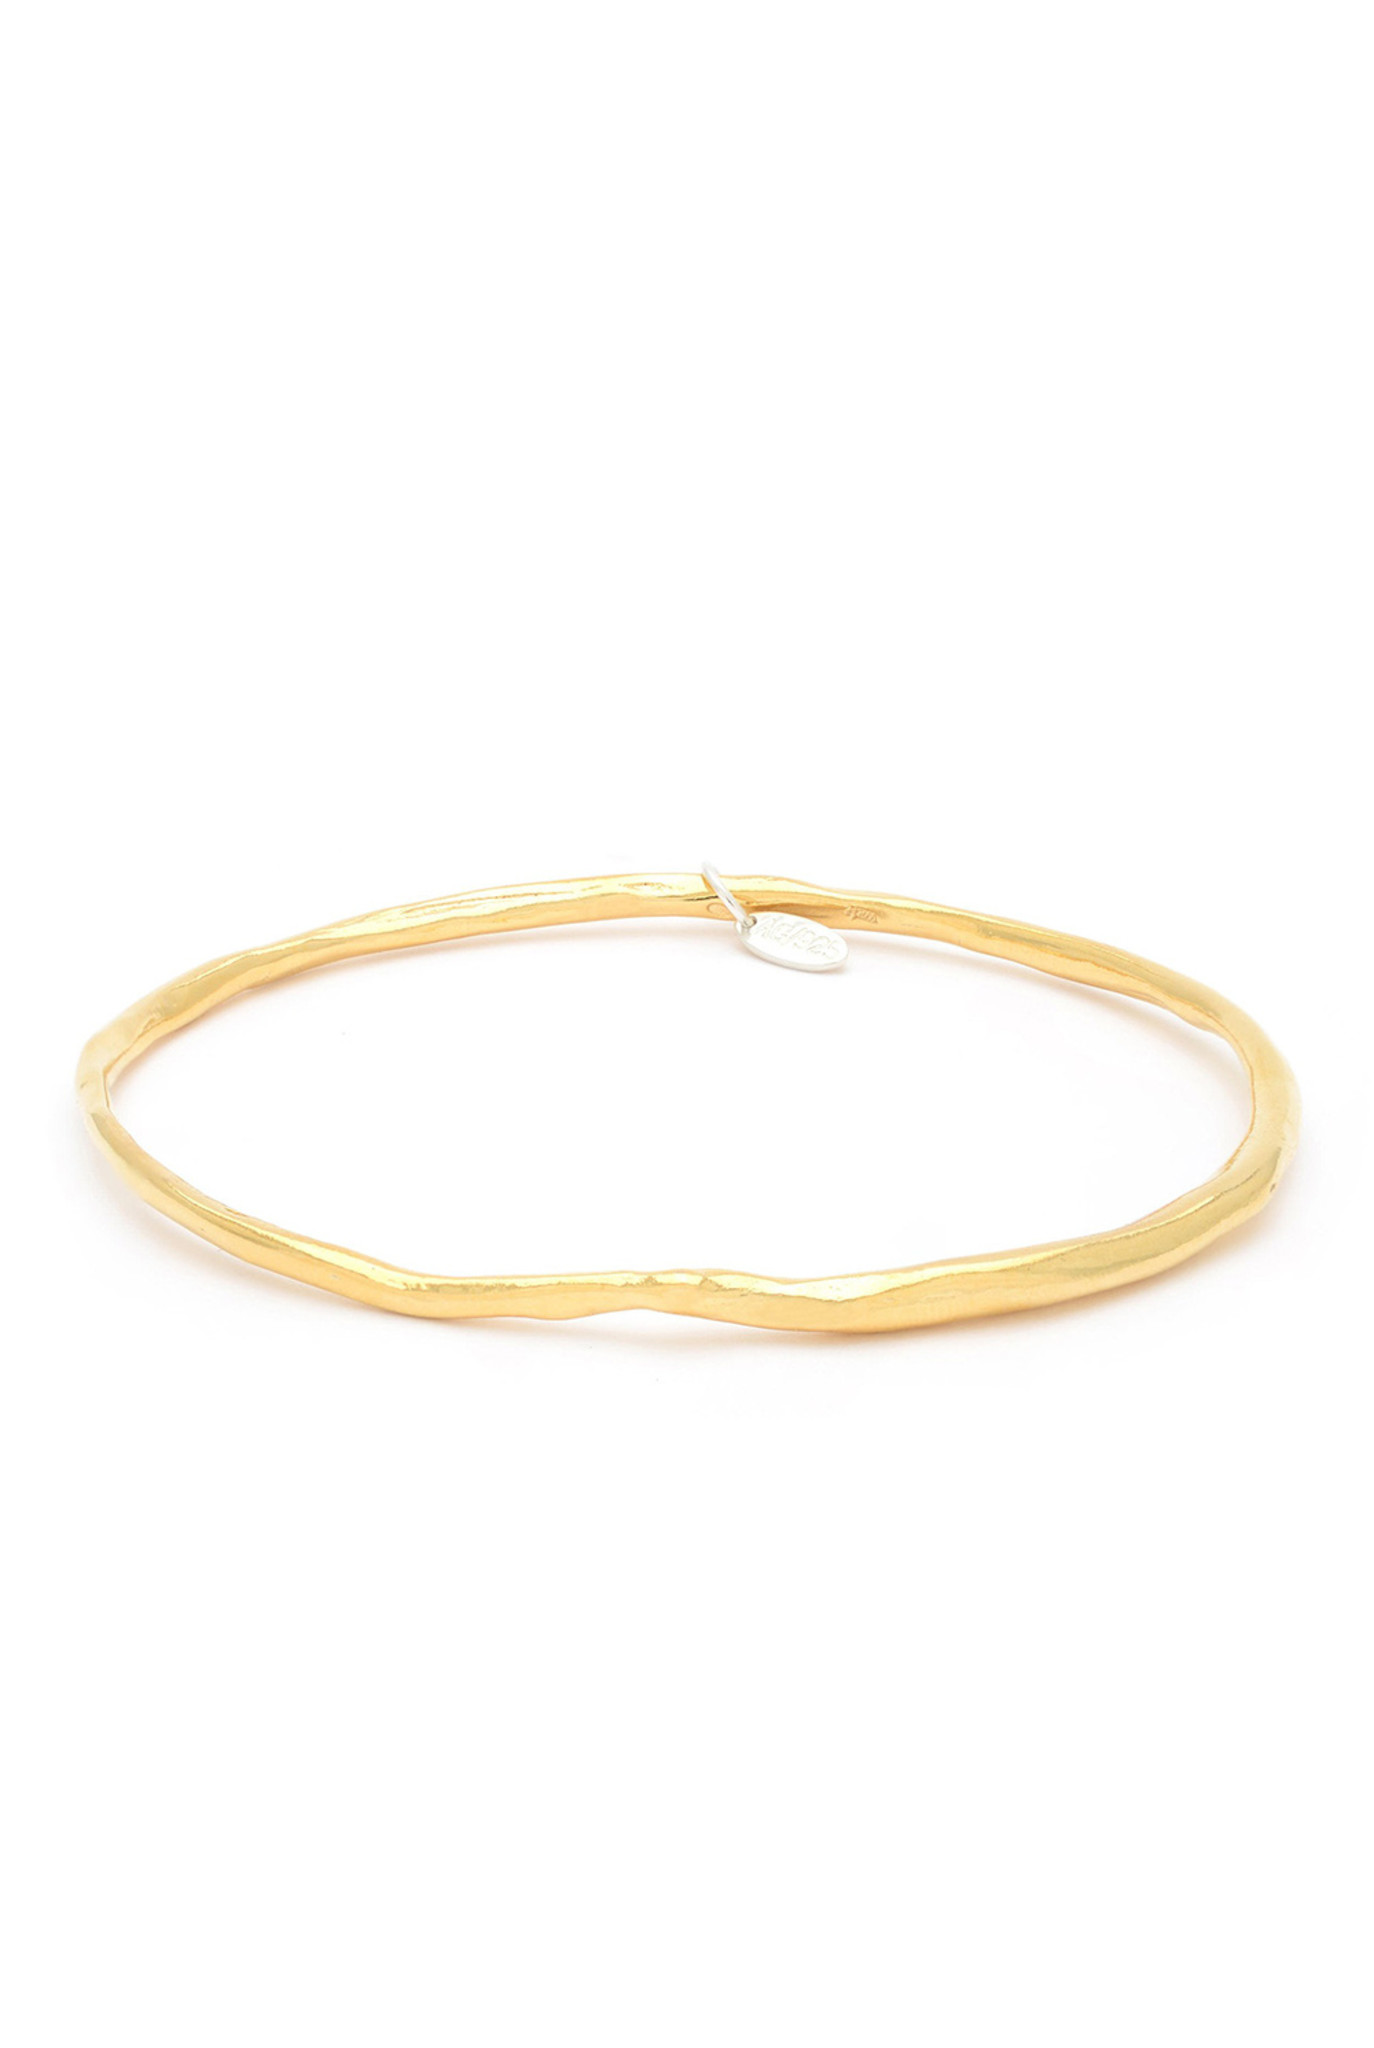 Bangle goldplated